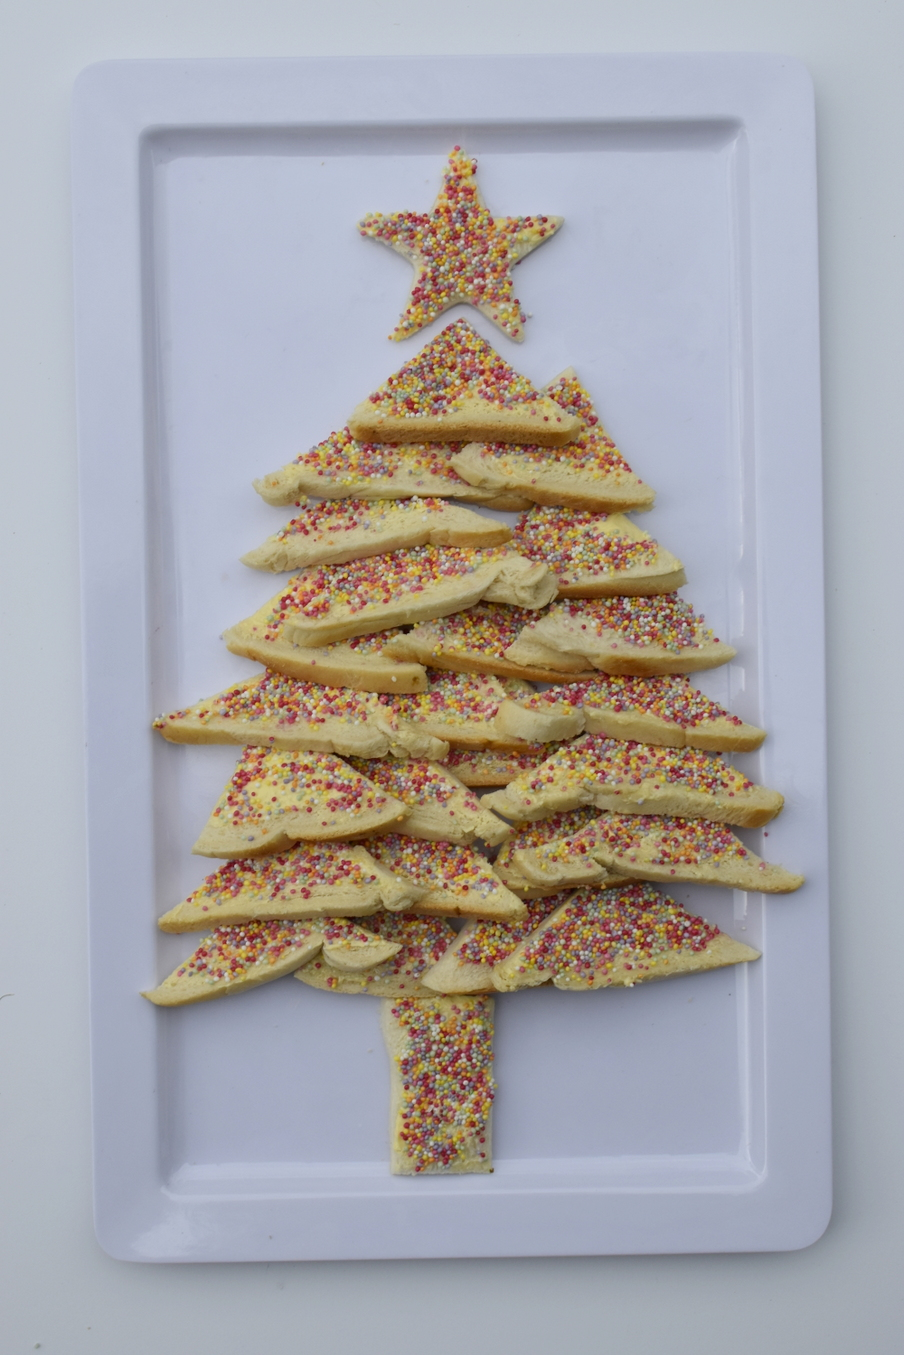 Festive Bring a Plate Ideas - Christmas Fairy Bread